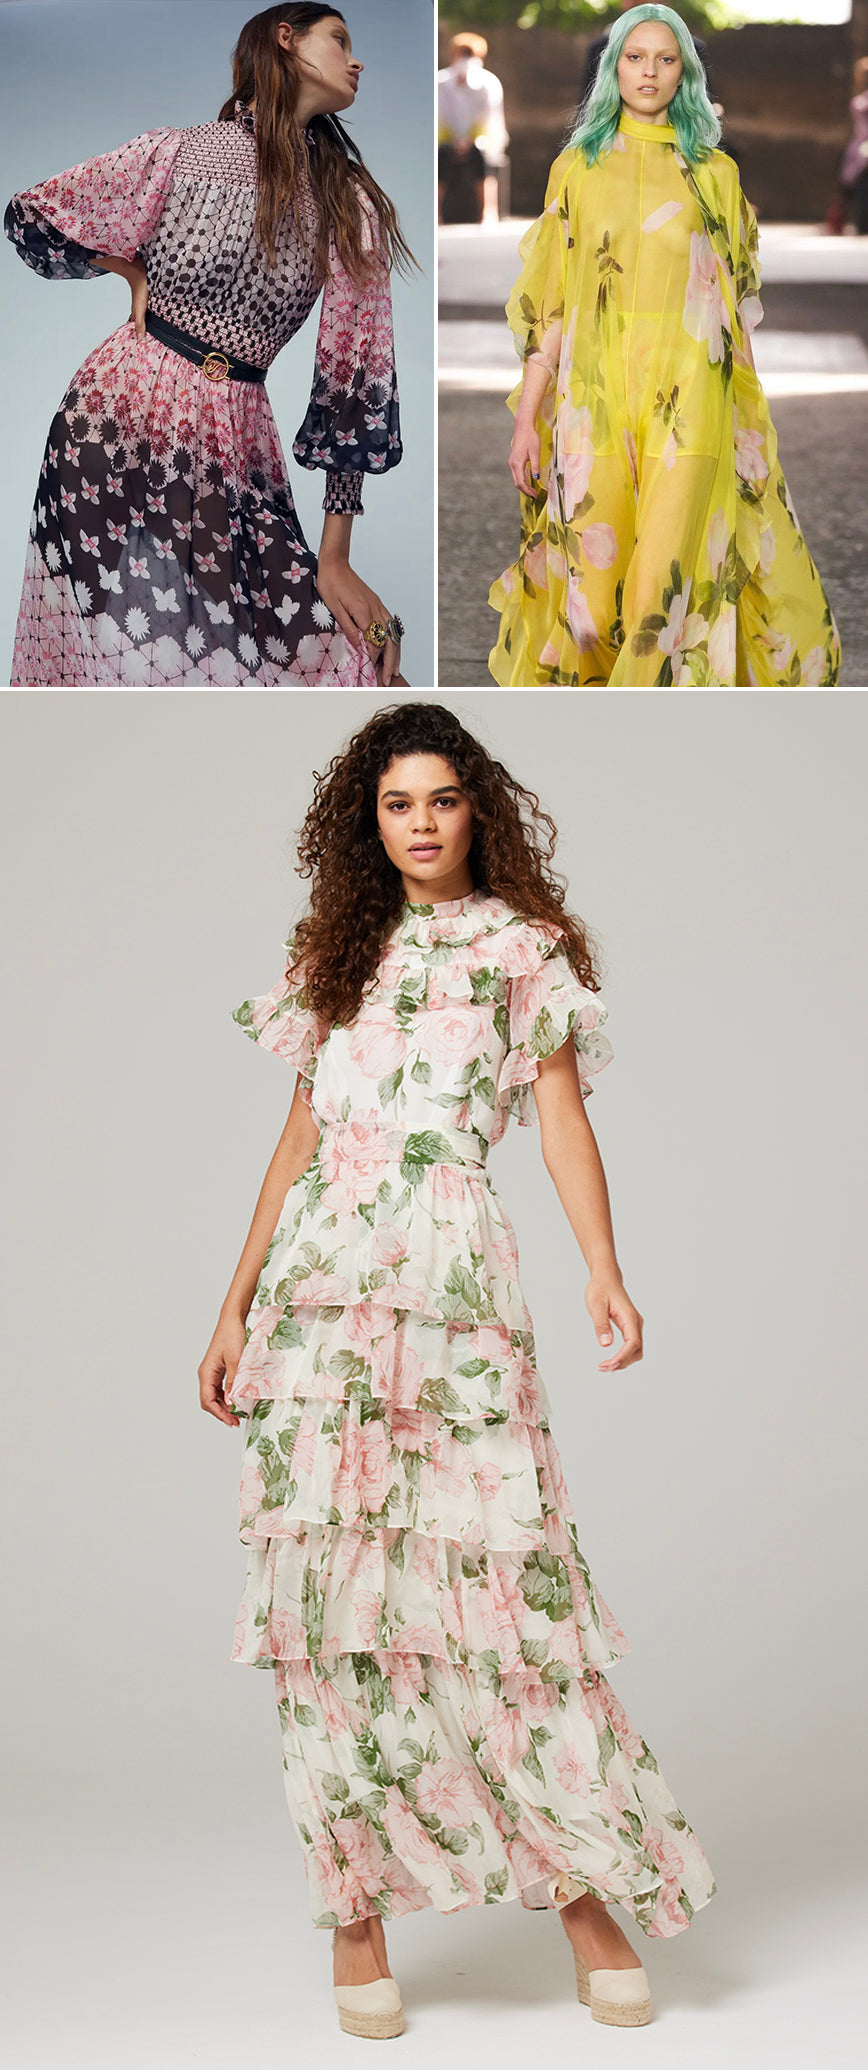 ridleylondon-luxurious-printed-floral-silk-tiered-maxi-dress-with-roses-spring-2021